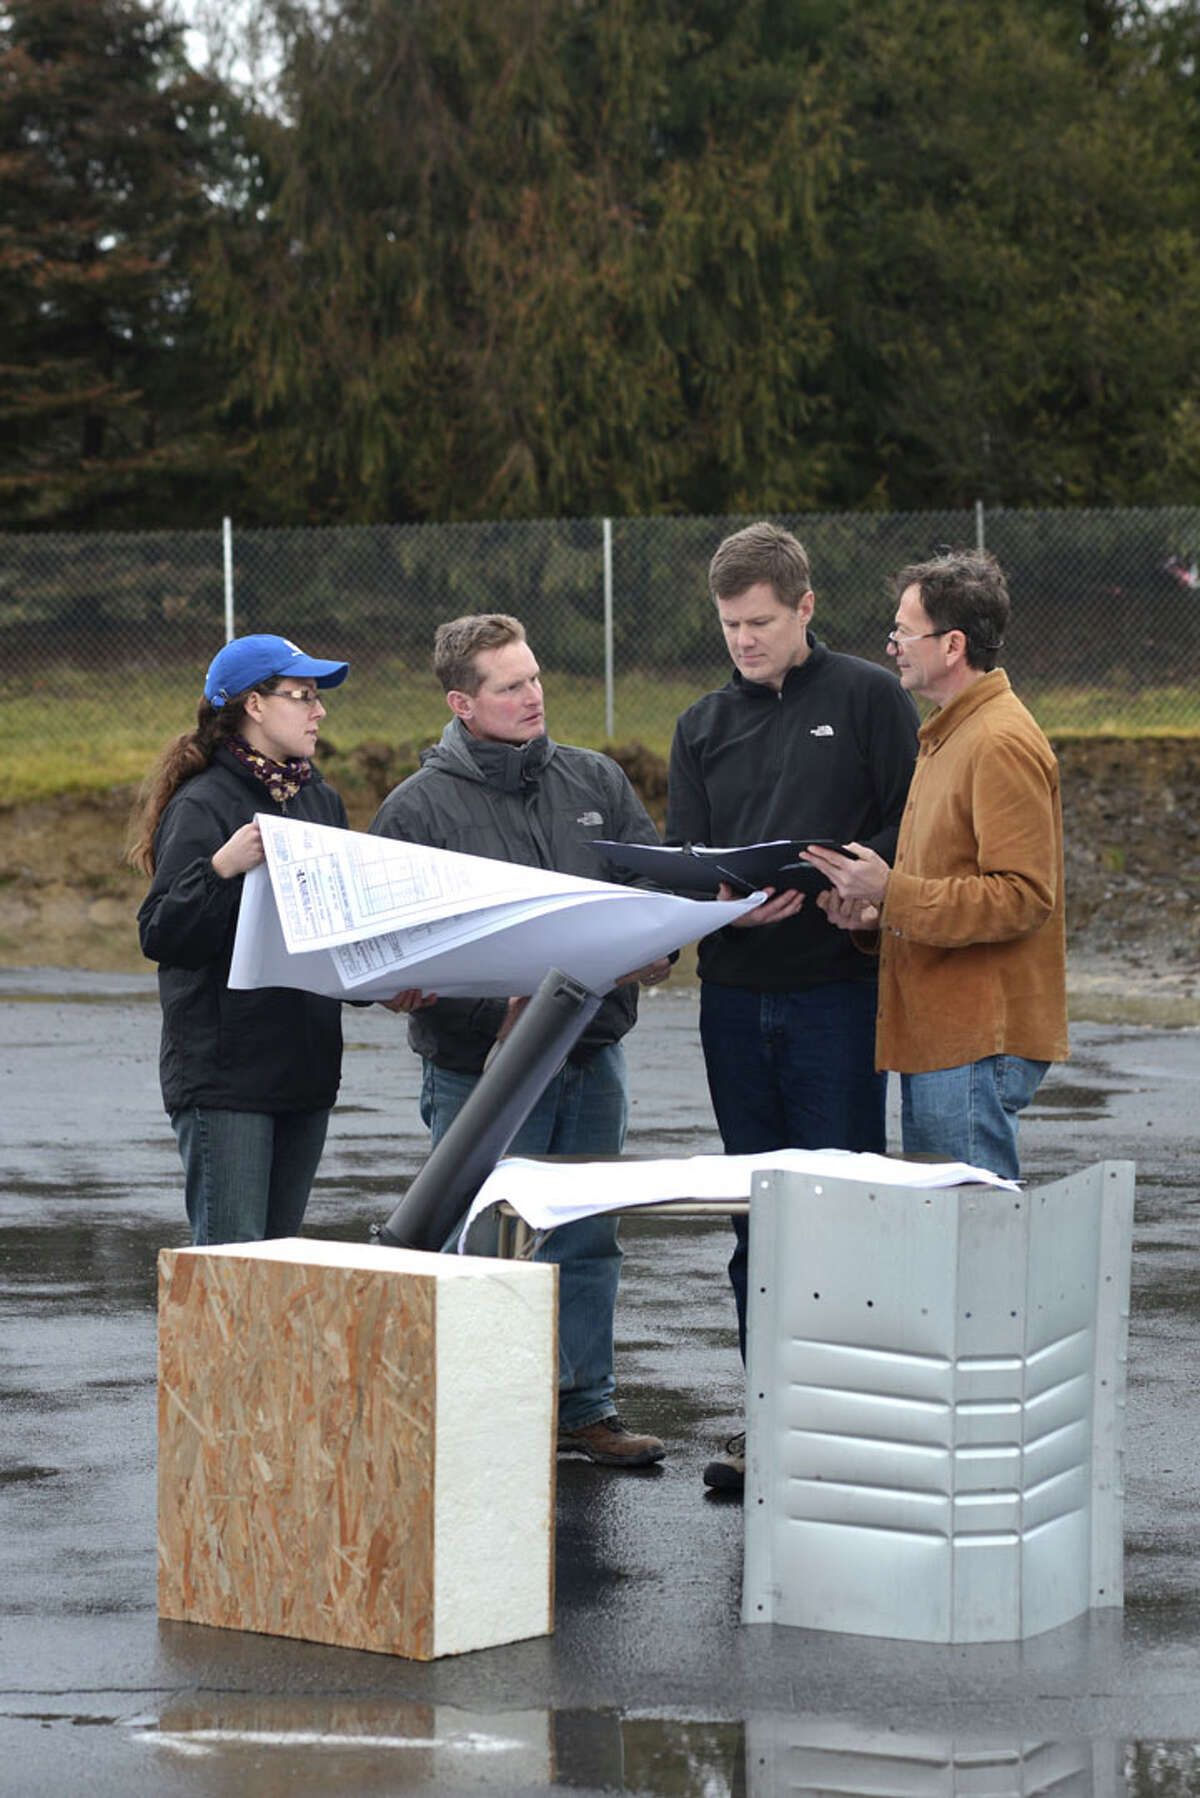 Hudson-based architect Dennis Wedlick, far right, reviews plans for a new passive office for TCI, an electrical transformer recycling company in Ghent, Columbia County. Wedlick desiged the first building in state to be certified under energy-efficient passive building standards.